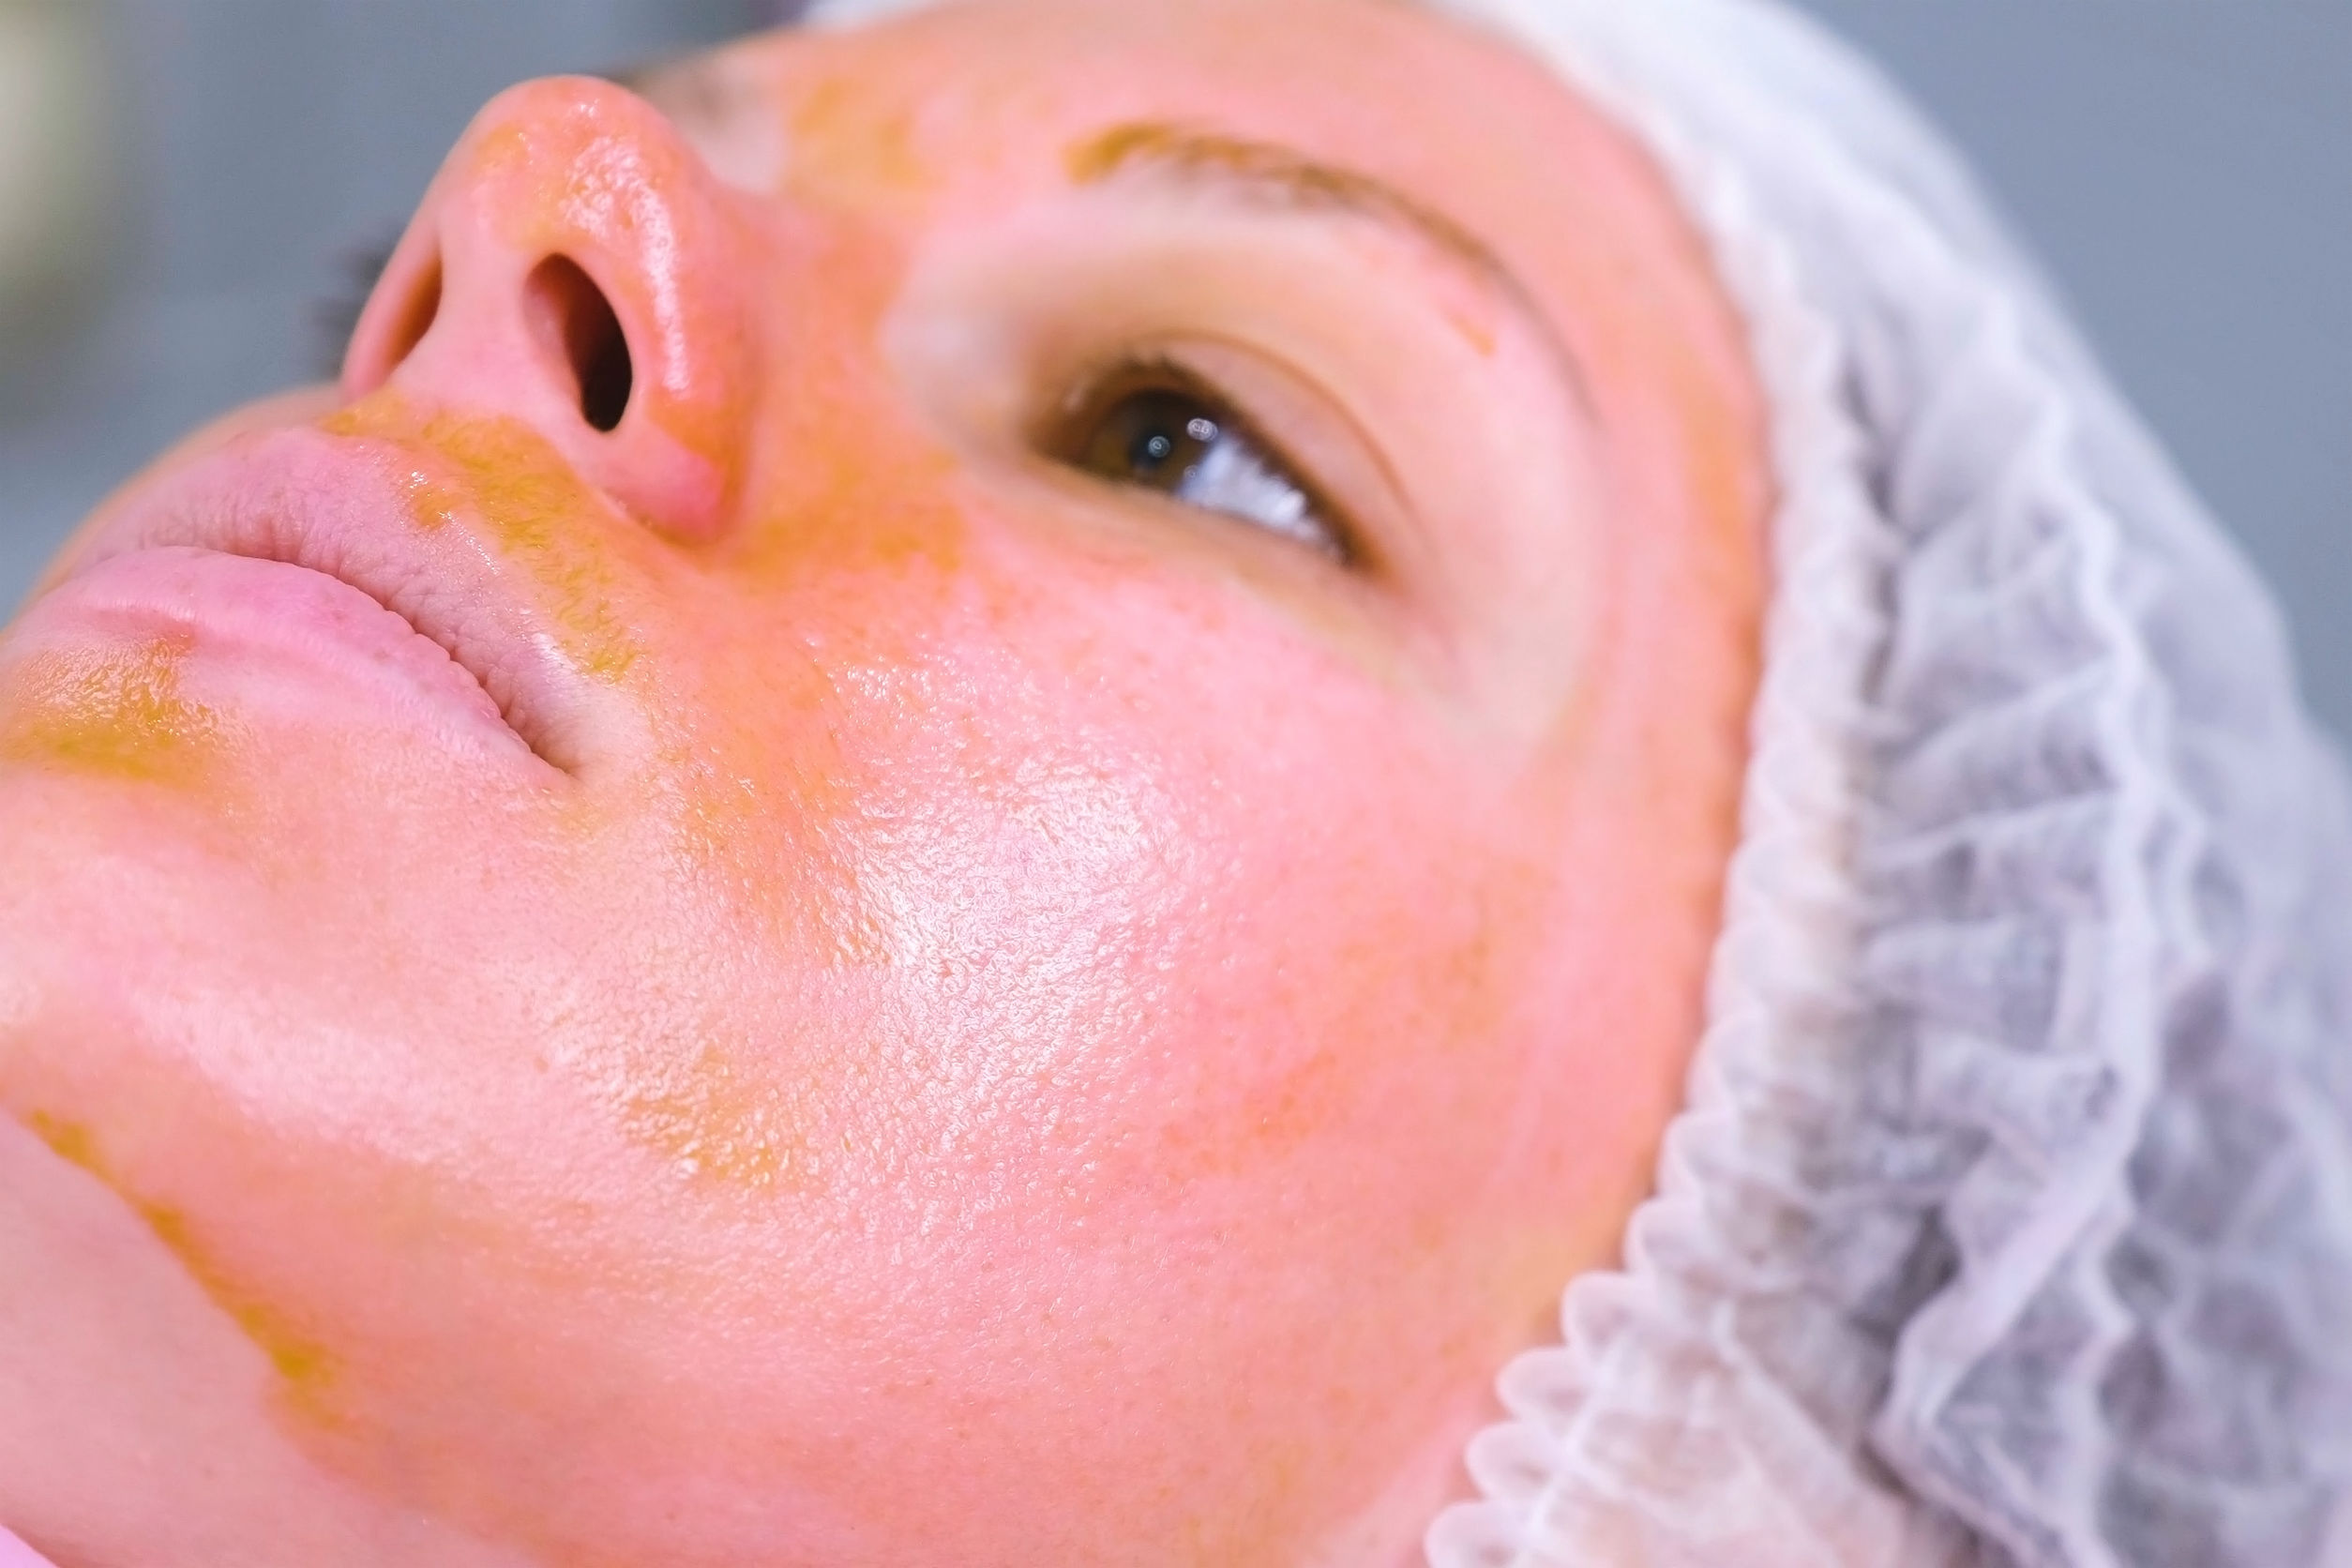 Chemical peeling o the woman's face. Cleaning the face skin and lightening freckles skin. Close-up face. Side view.